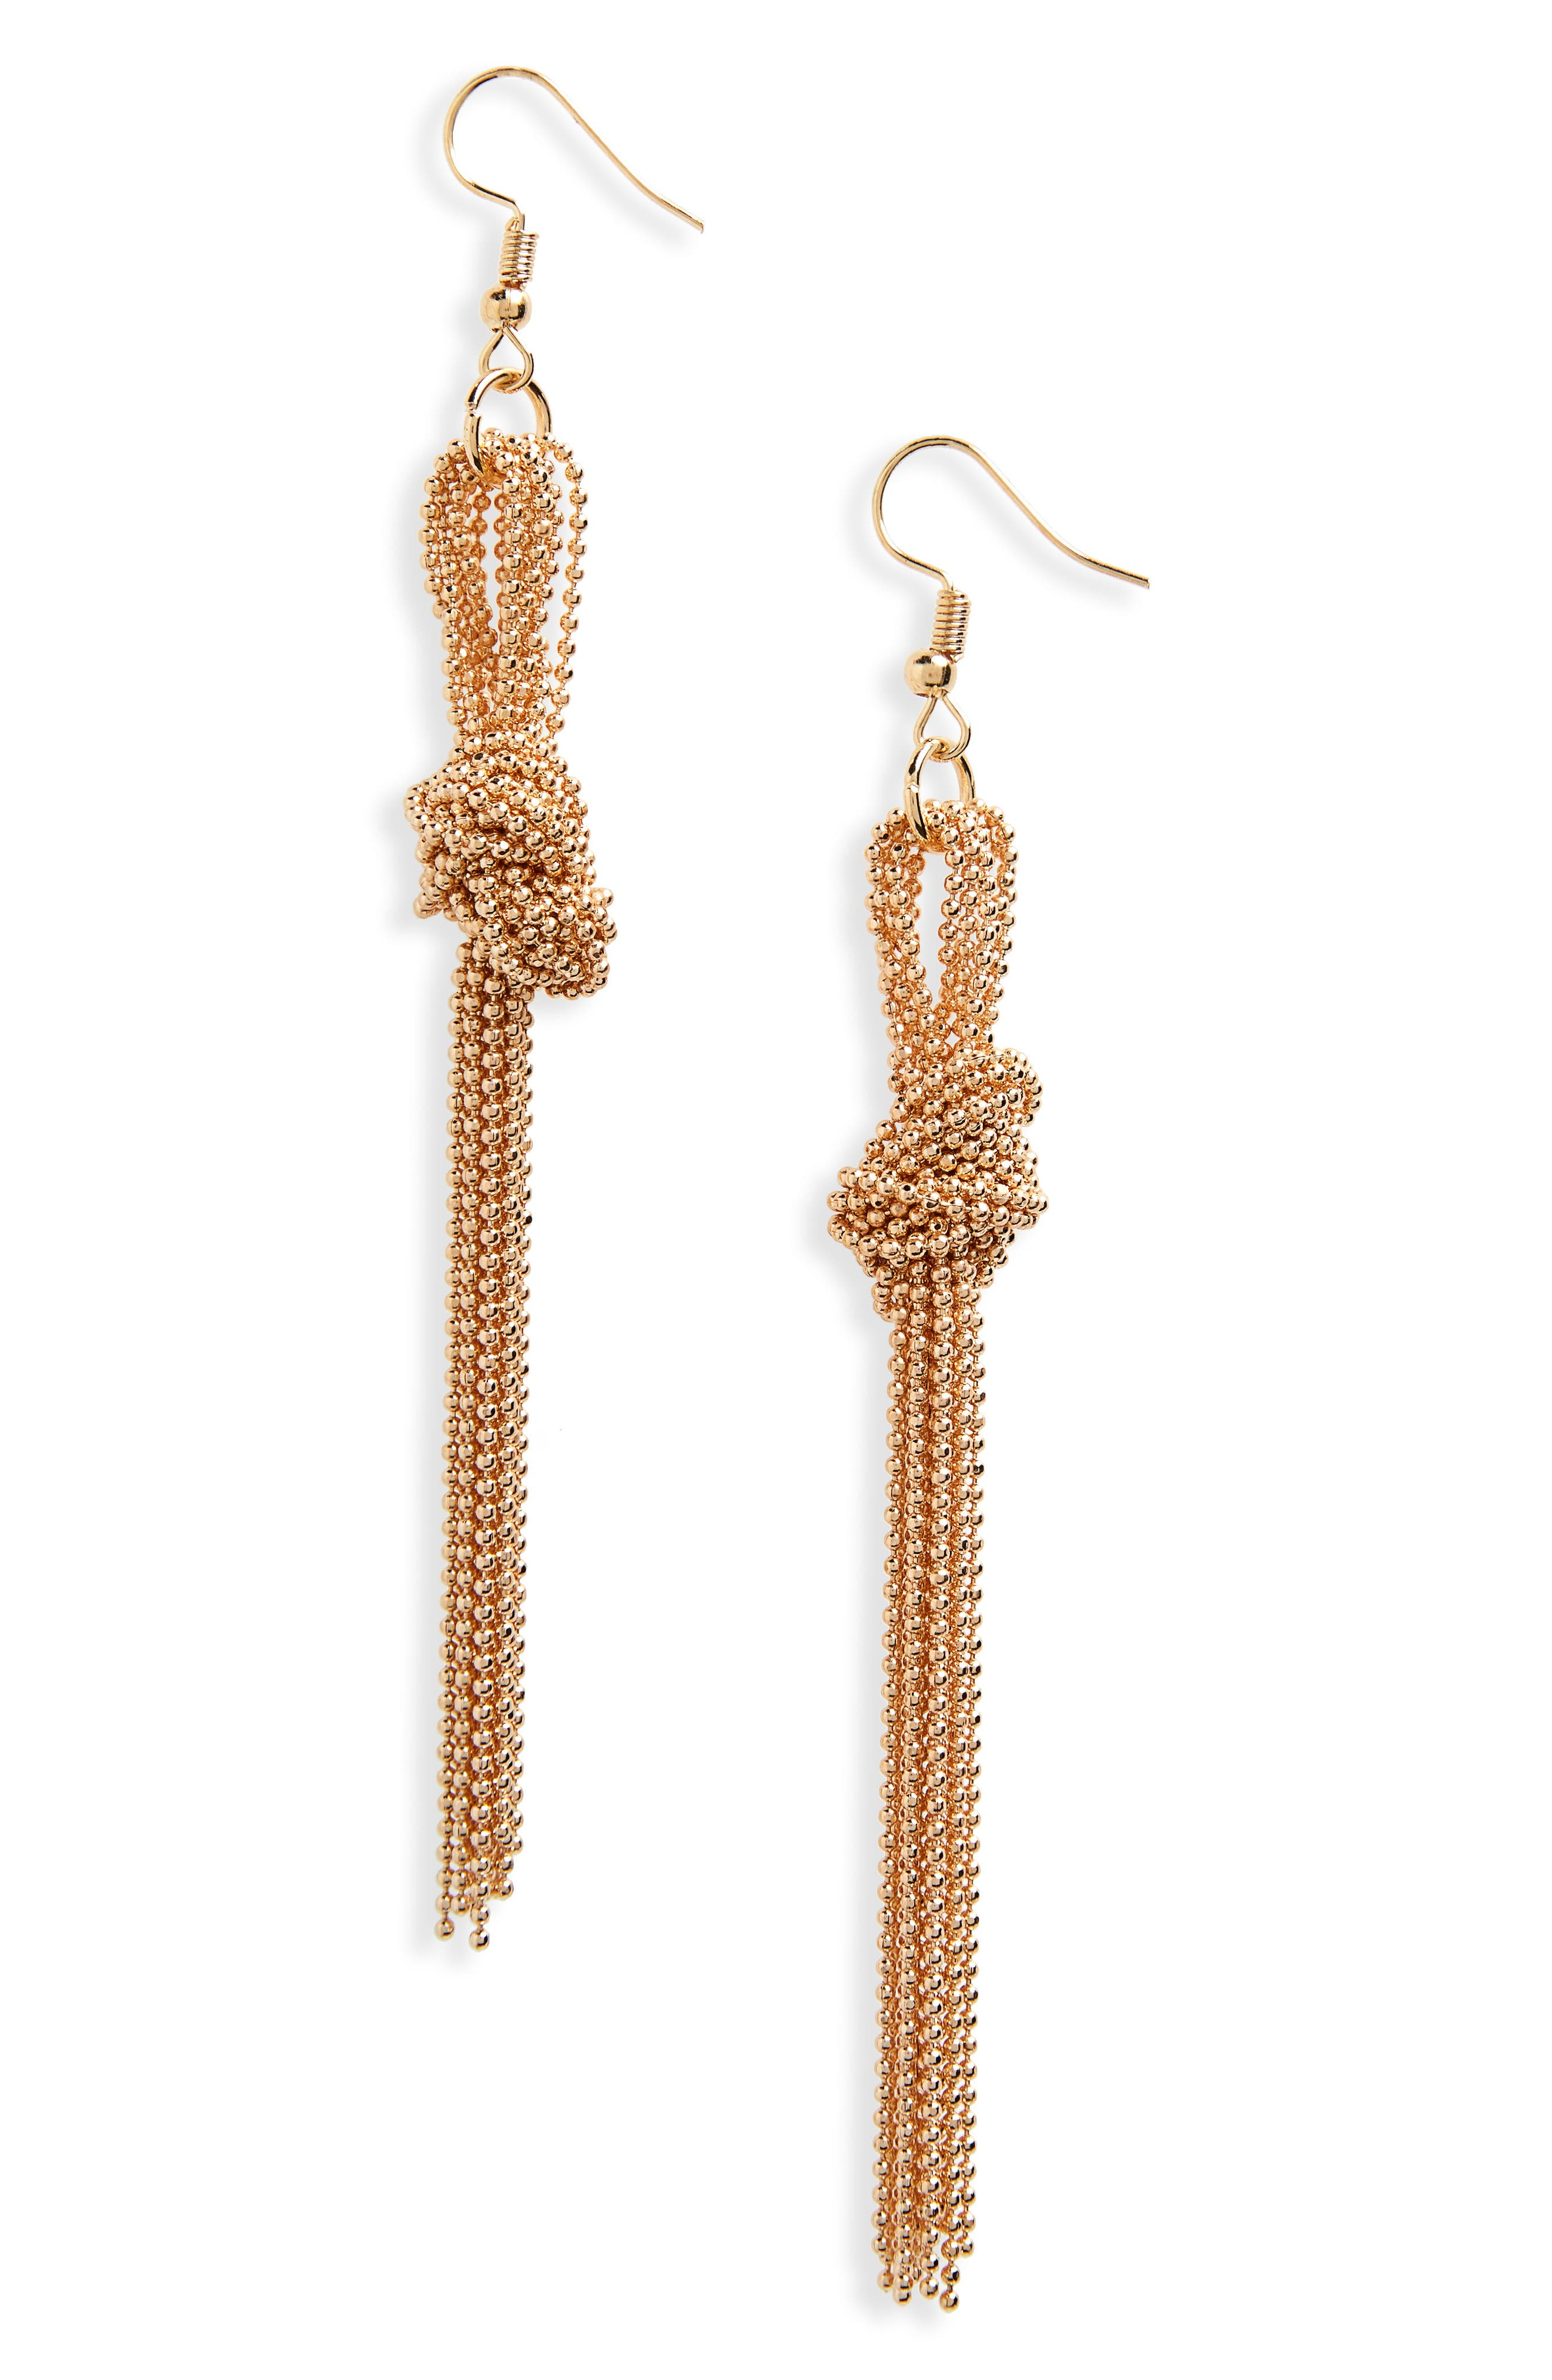 Knotted Bead Chain Linear Earrings,                             Main thumbnail 1, color,                             GOLD